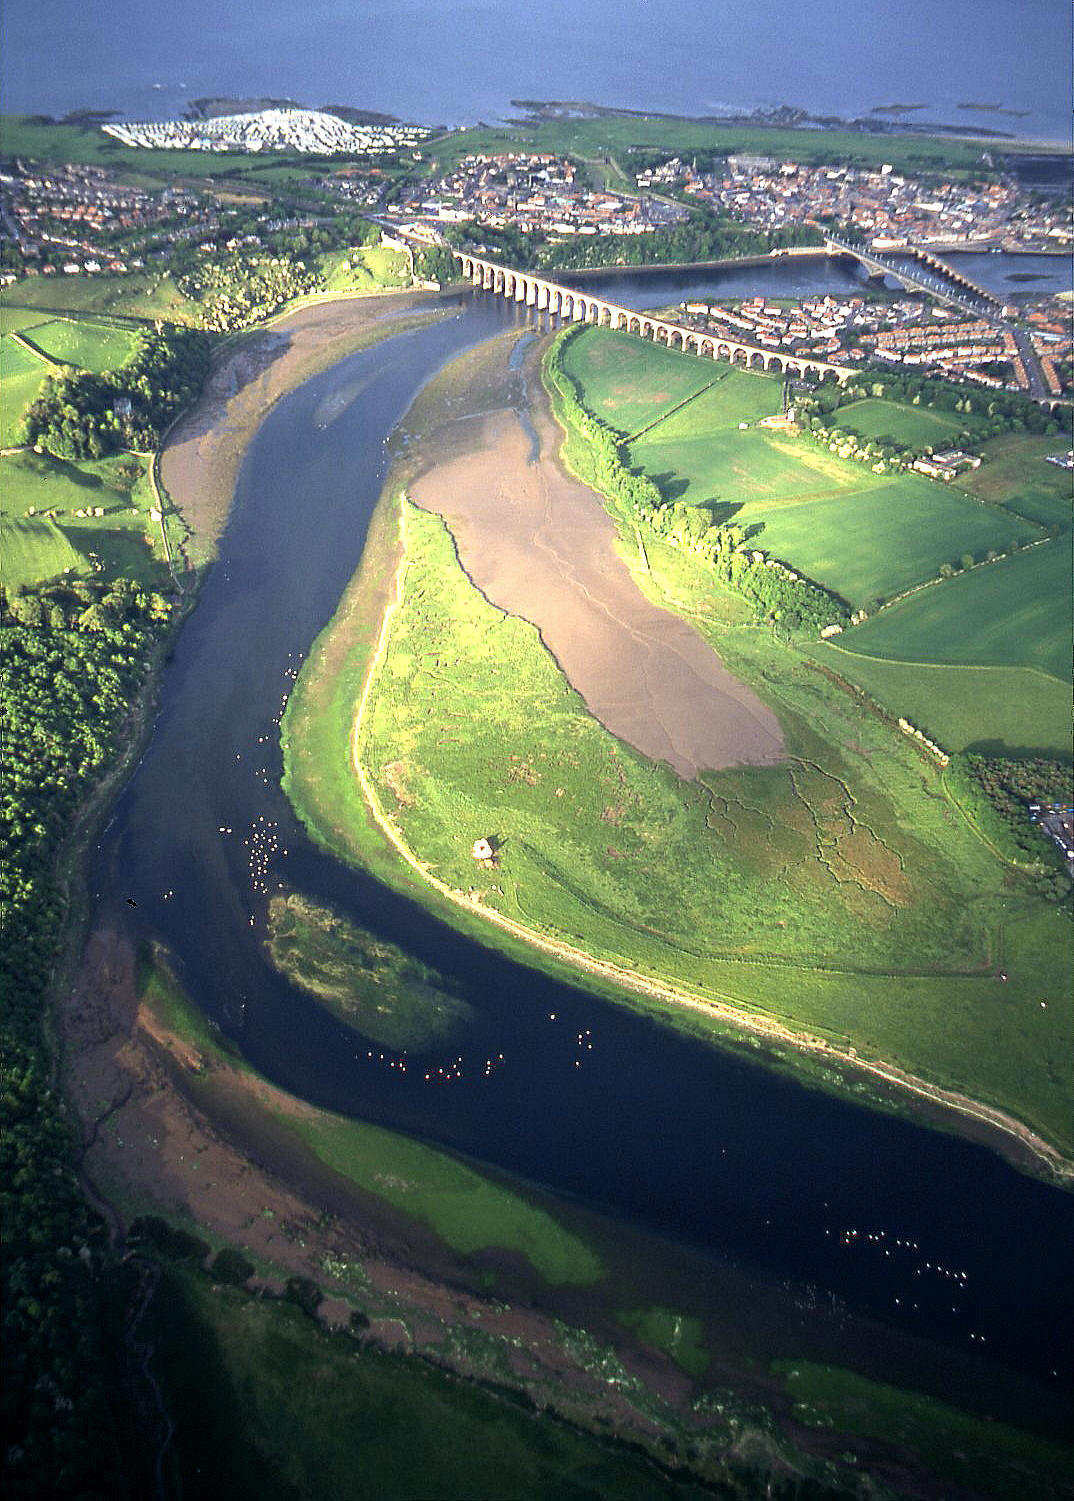 Berwick-upon-Tweed, May 2004